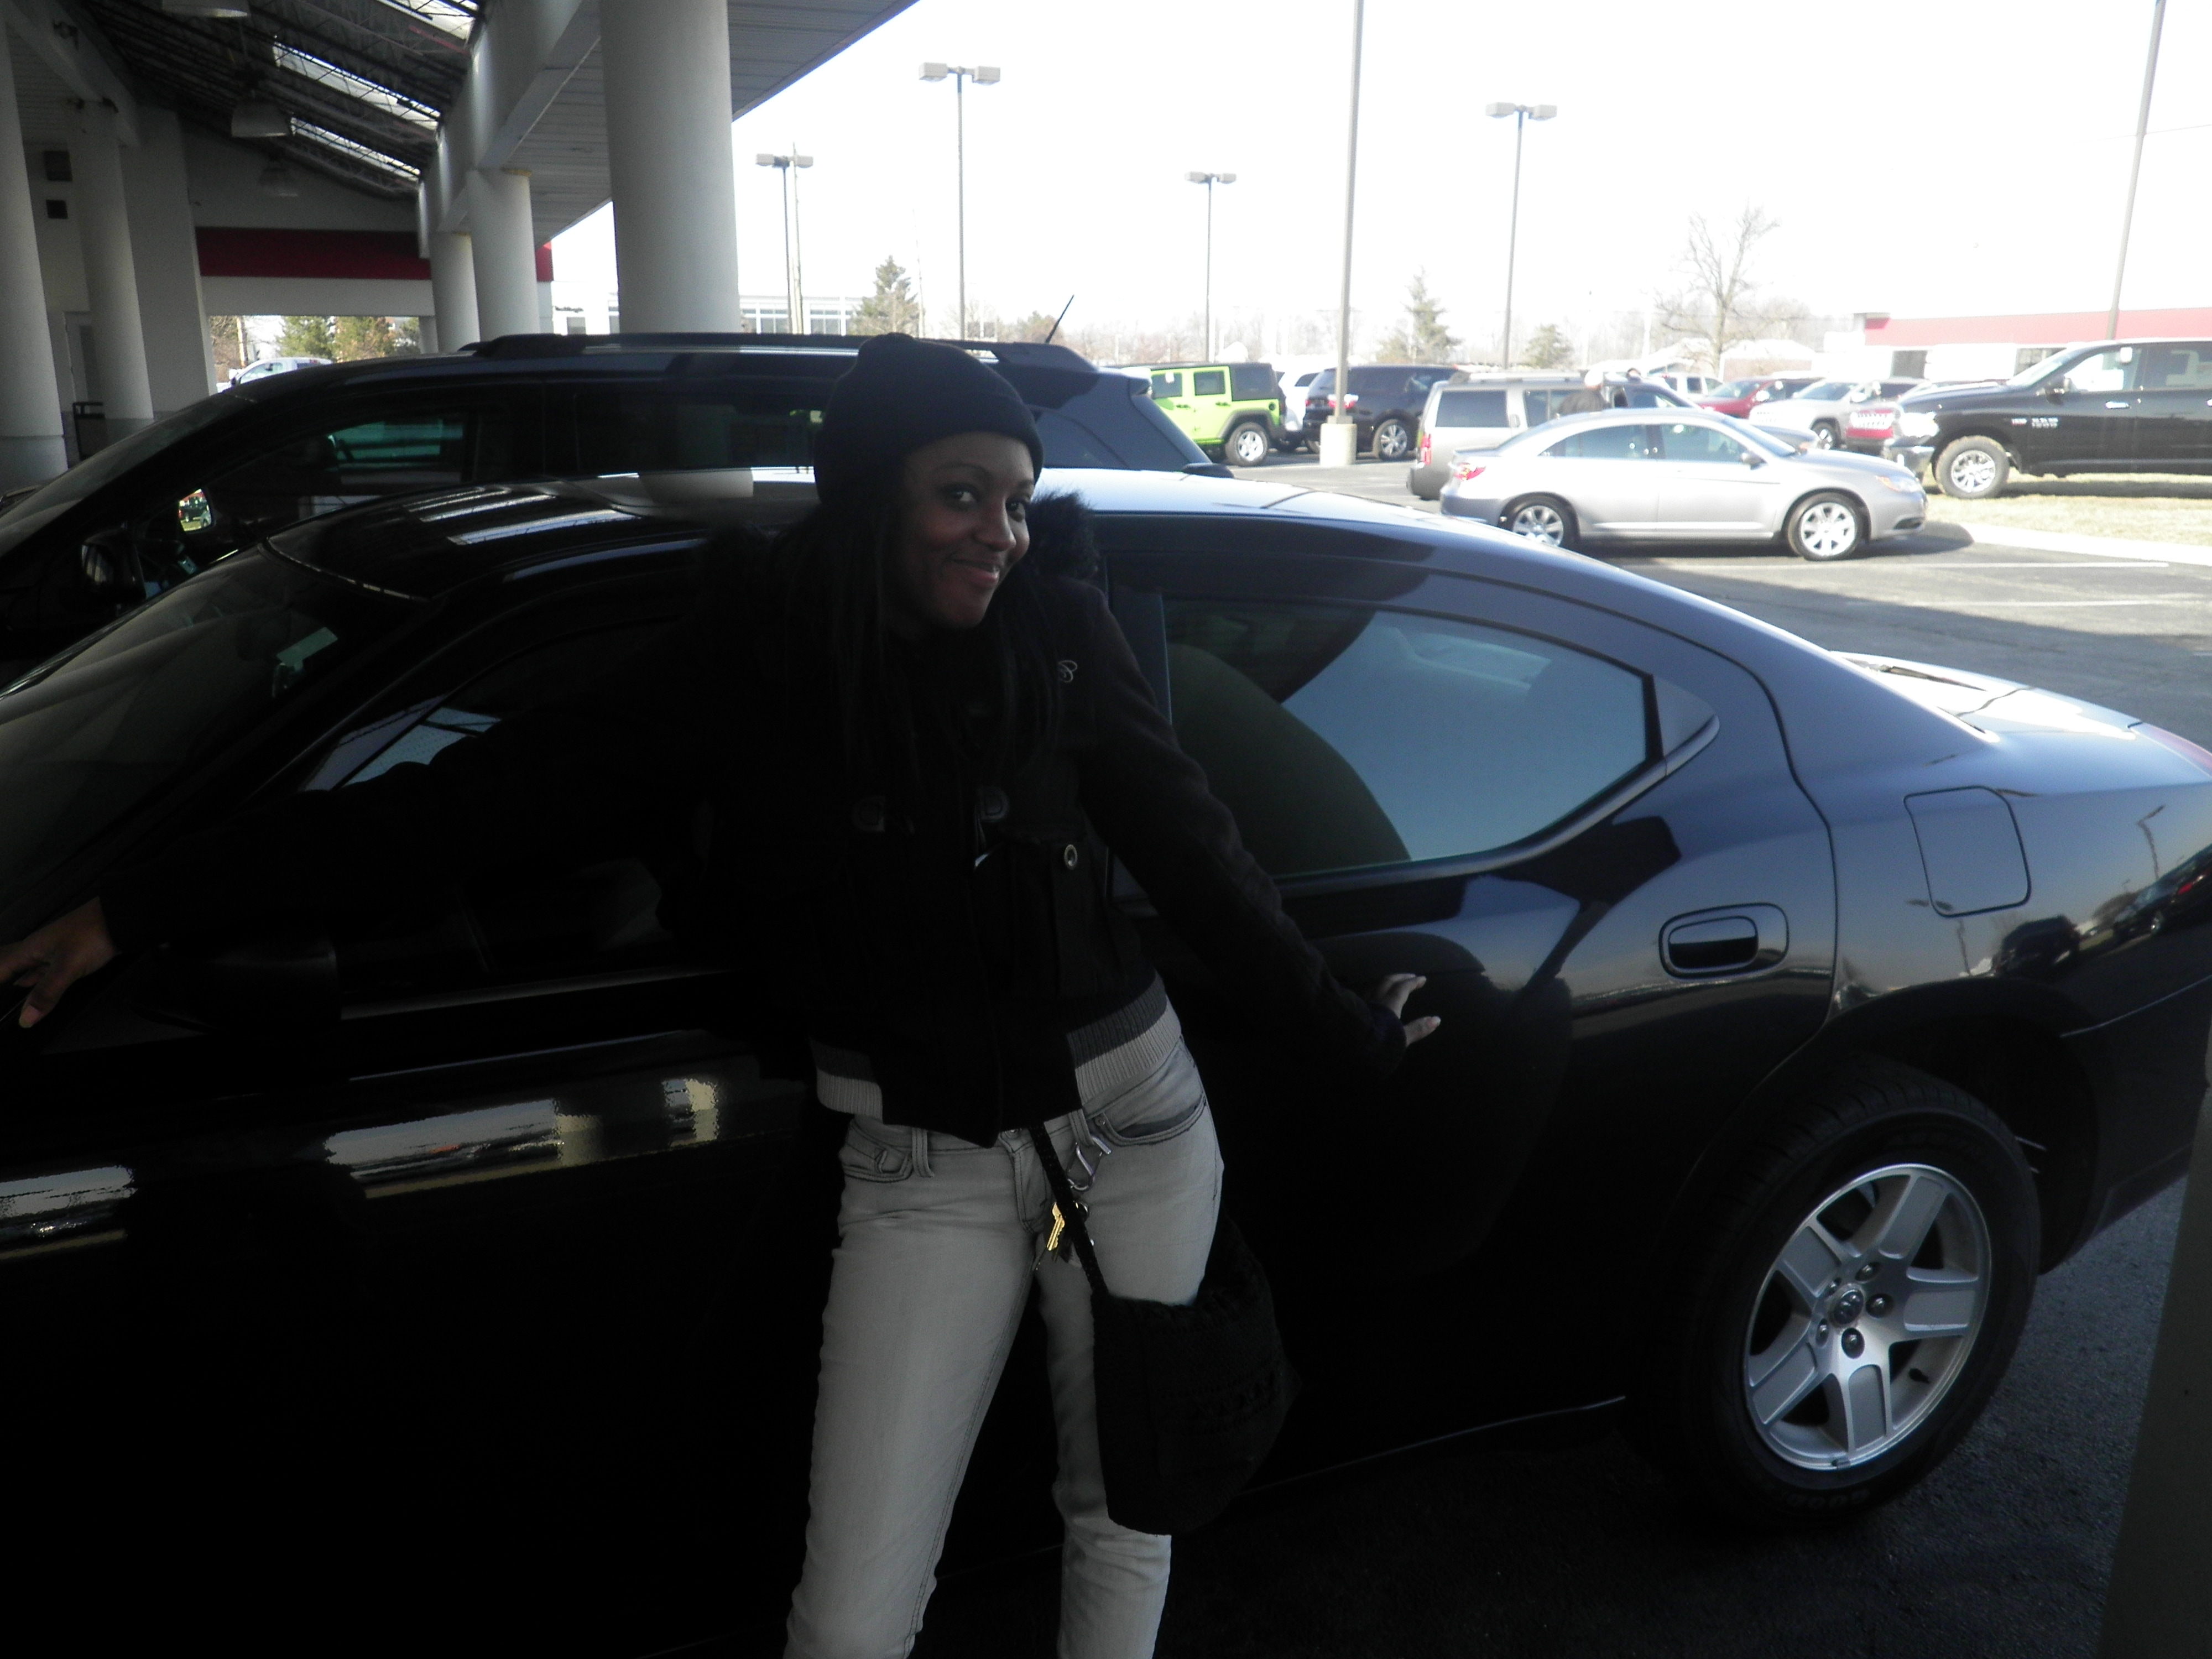 buy dealership com dealers great auto indianapolis curtis otoriyoce e here chrysler in sales pay dodge